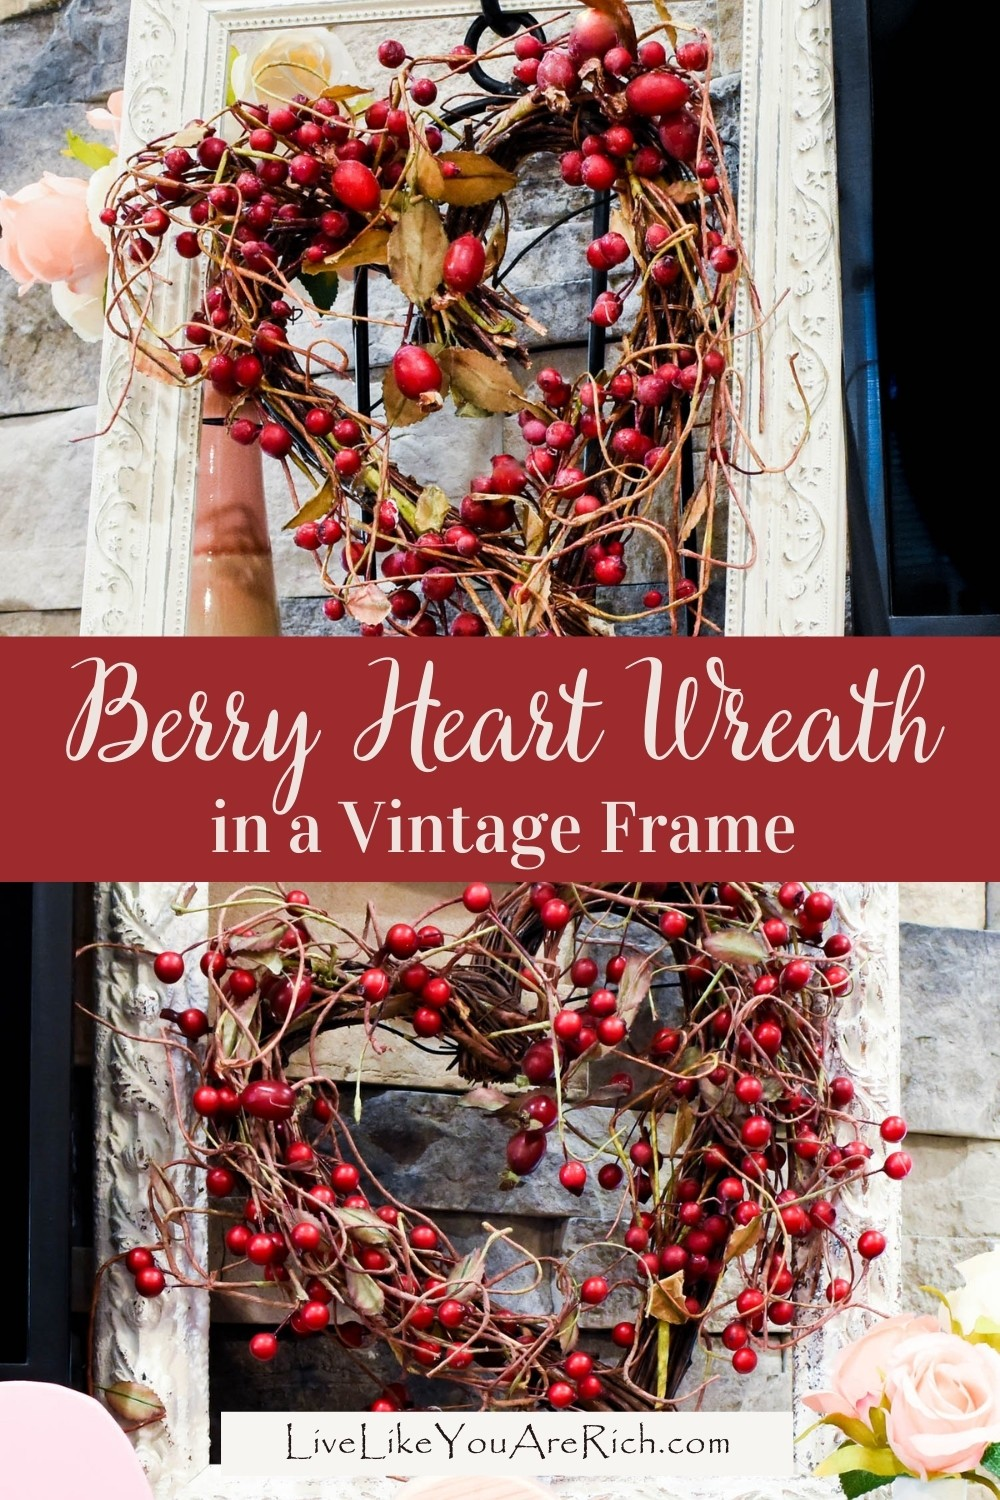 This Berry Heart Wreath in a Vintage Frame is a simple yet darling decoration. You can place it on a mantel or hang it on a wall or door. I have used one for a door wreath a few years ago and I used two this year for either side of my Valentine's Day Mantel